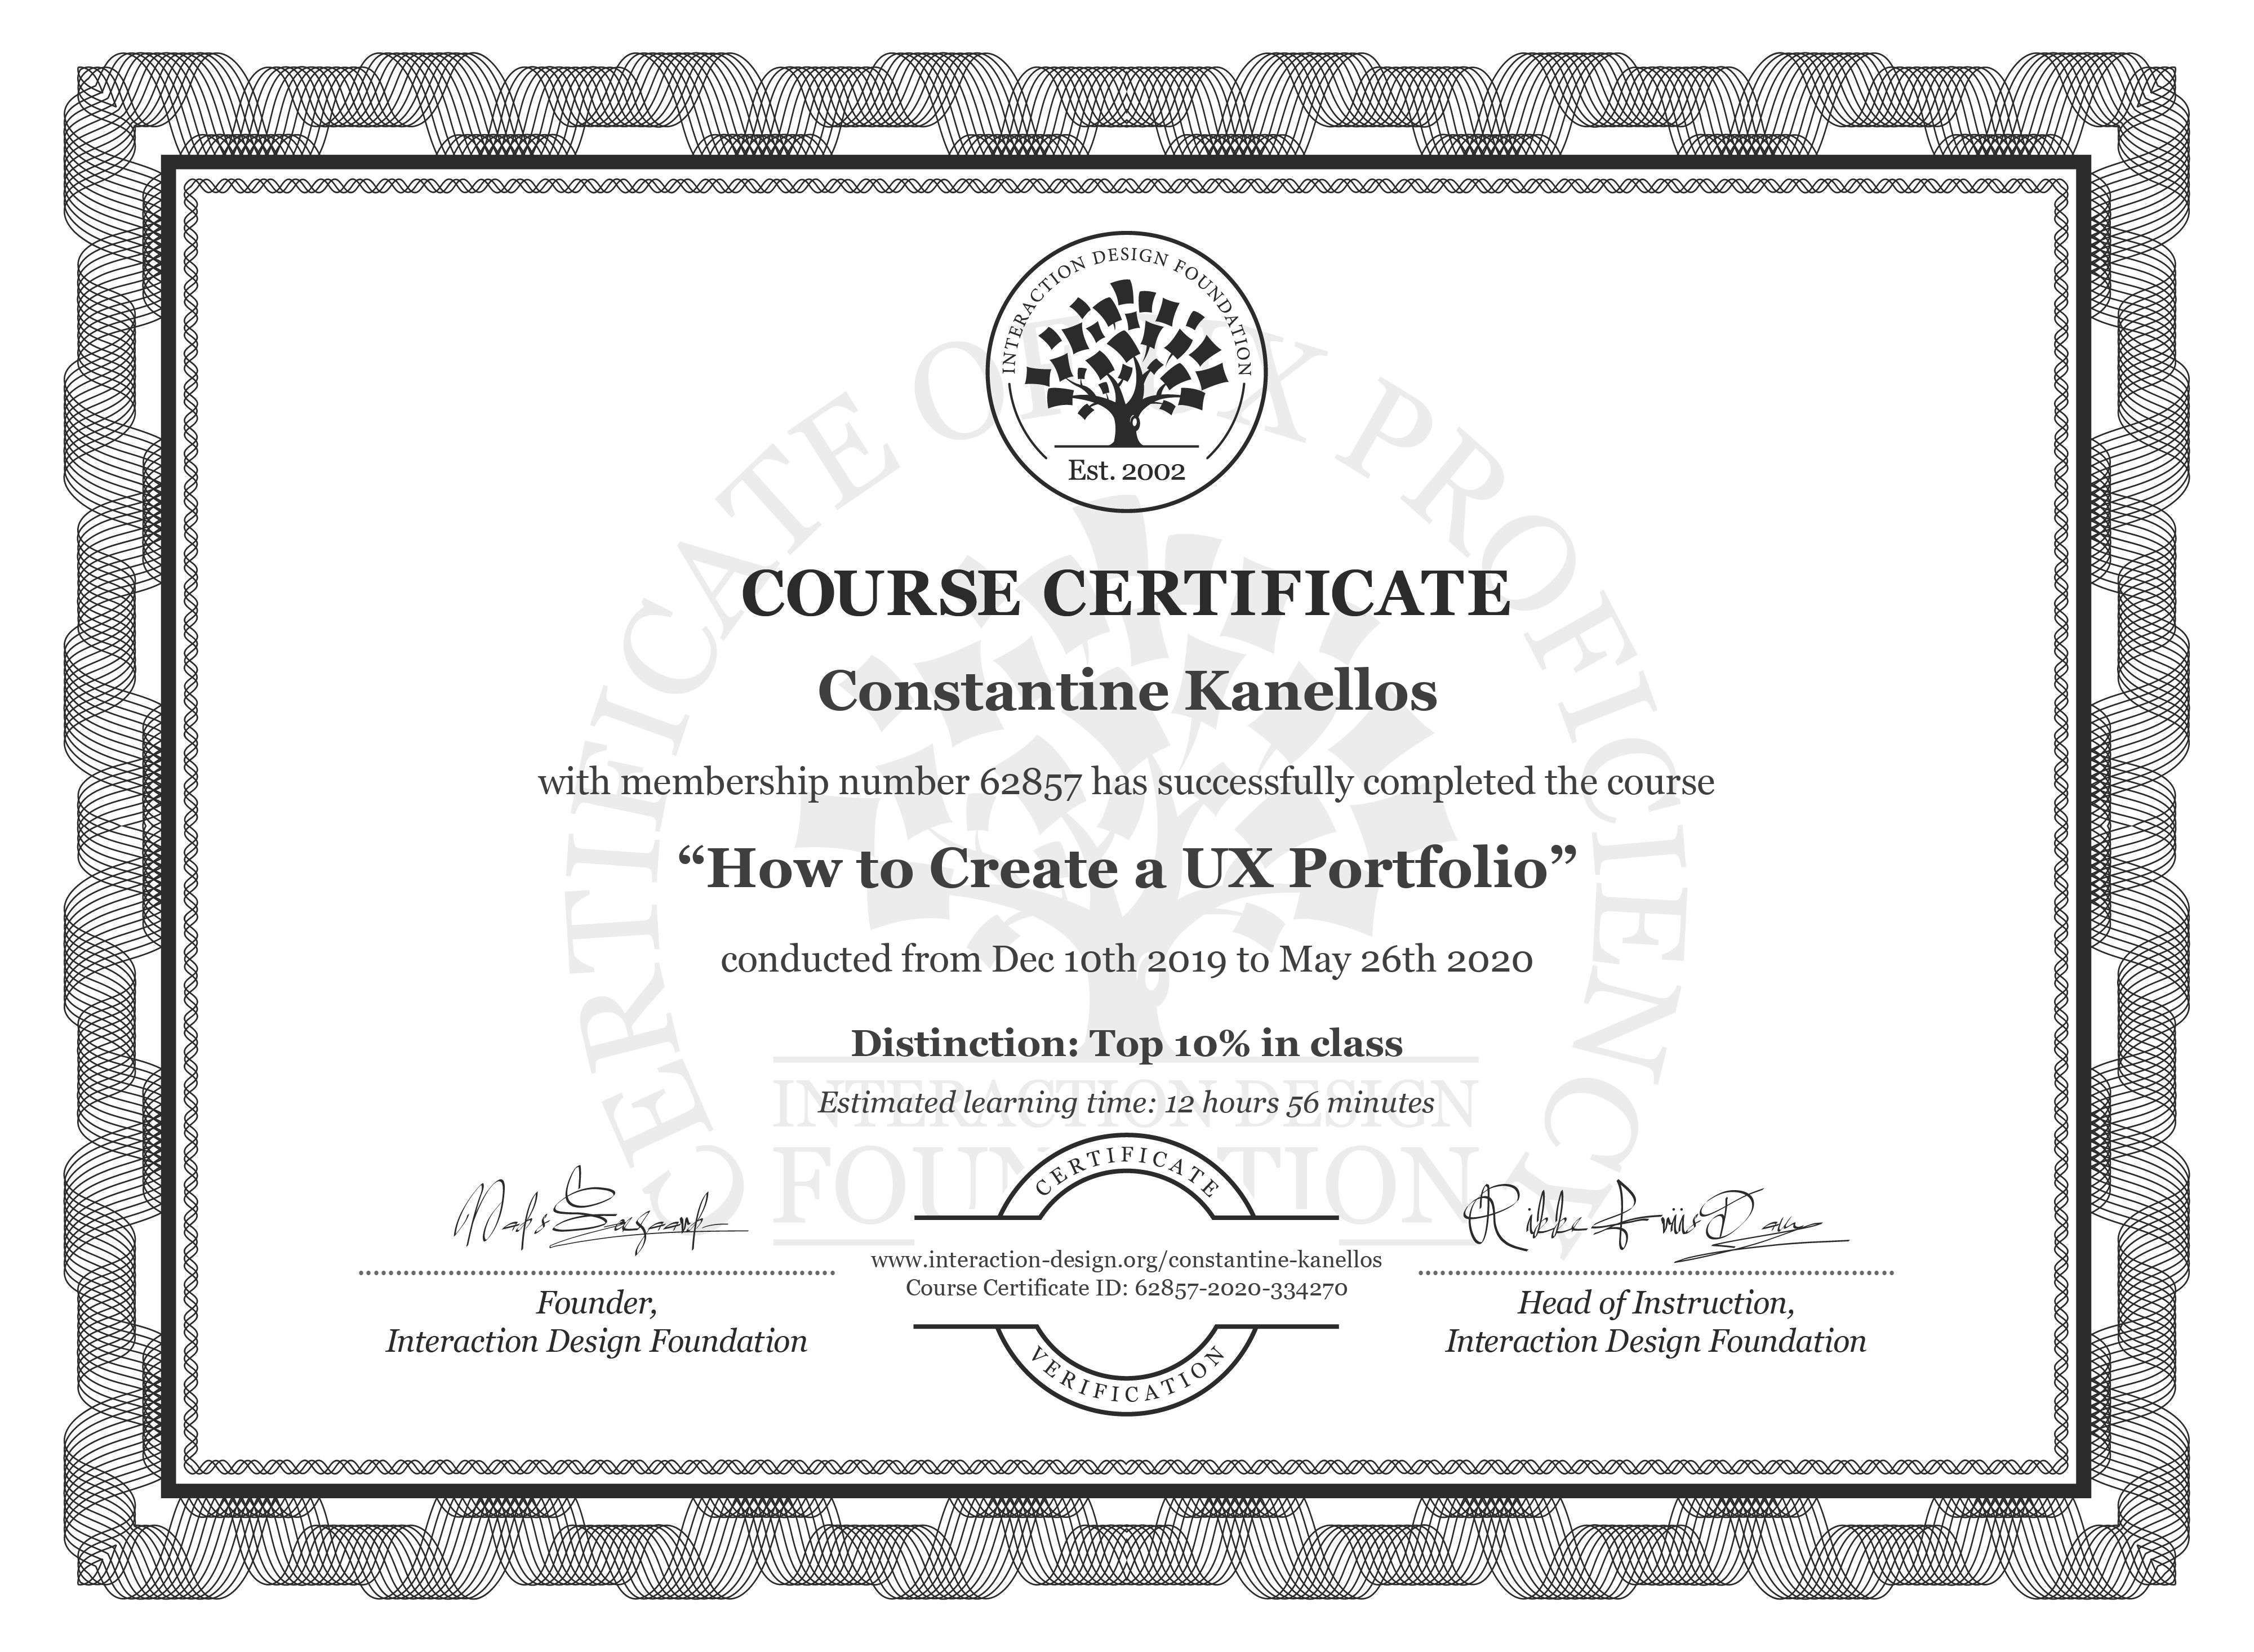 Constantine Kanellos's Course Certificate: How to Create a UX Portfolio